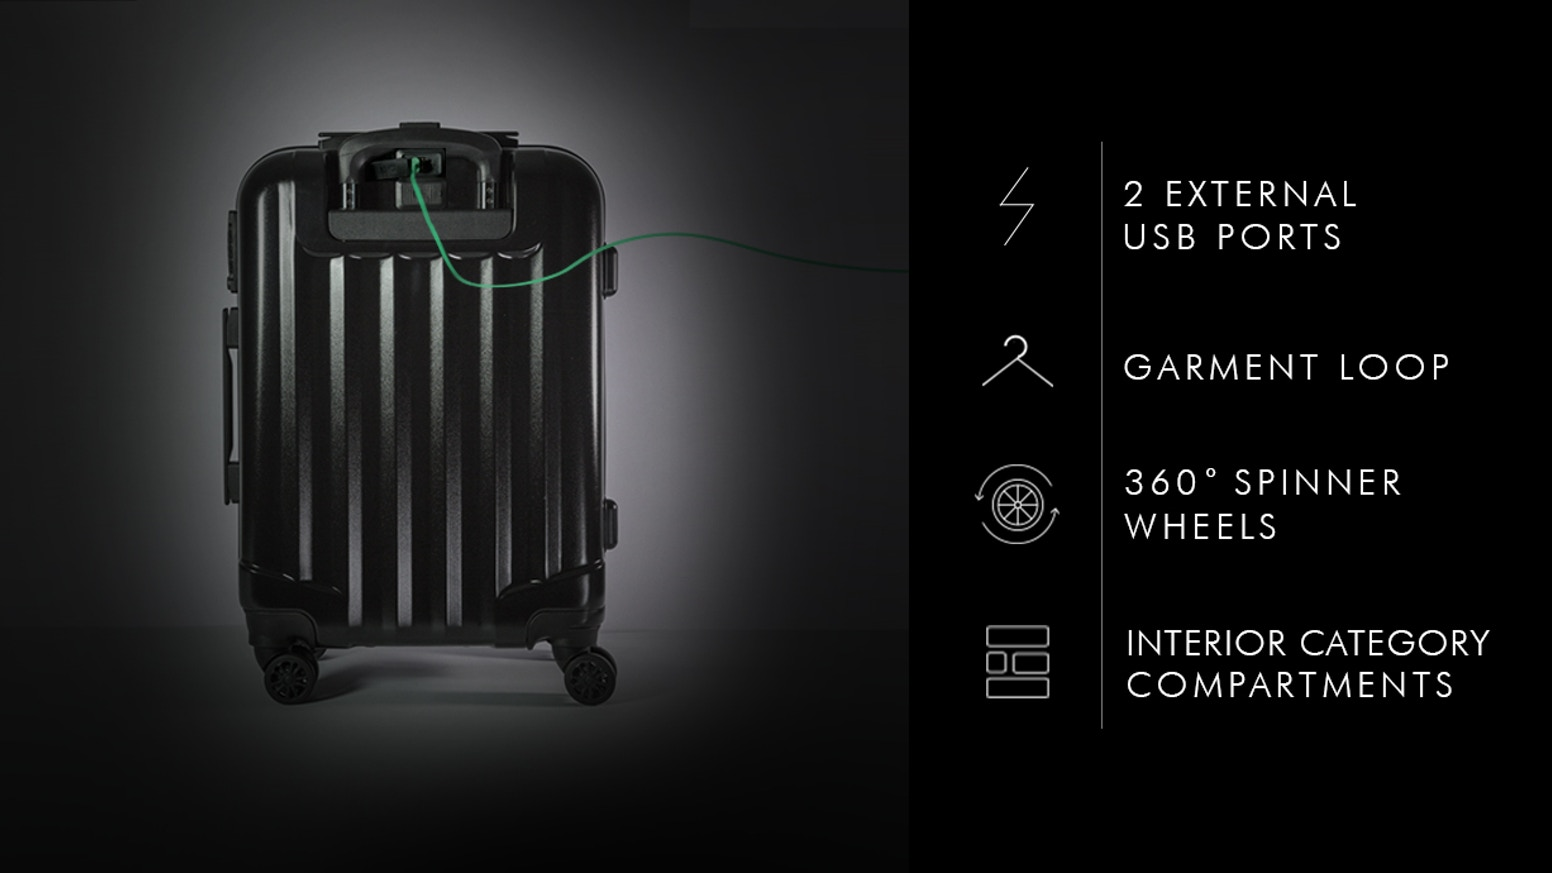 100% Polycarbonate Shell | 2 USB Ports | Airline-Approved PowerPack | Interior Category Compartments | Embedded Checklist | Ultra Light